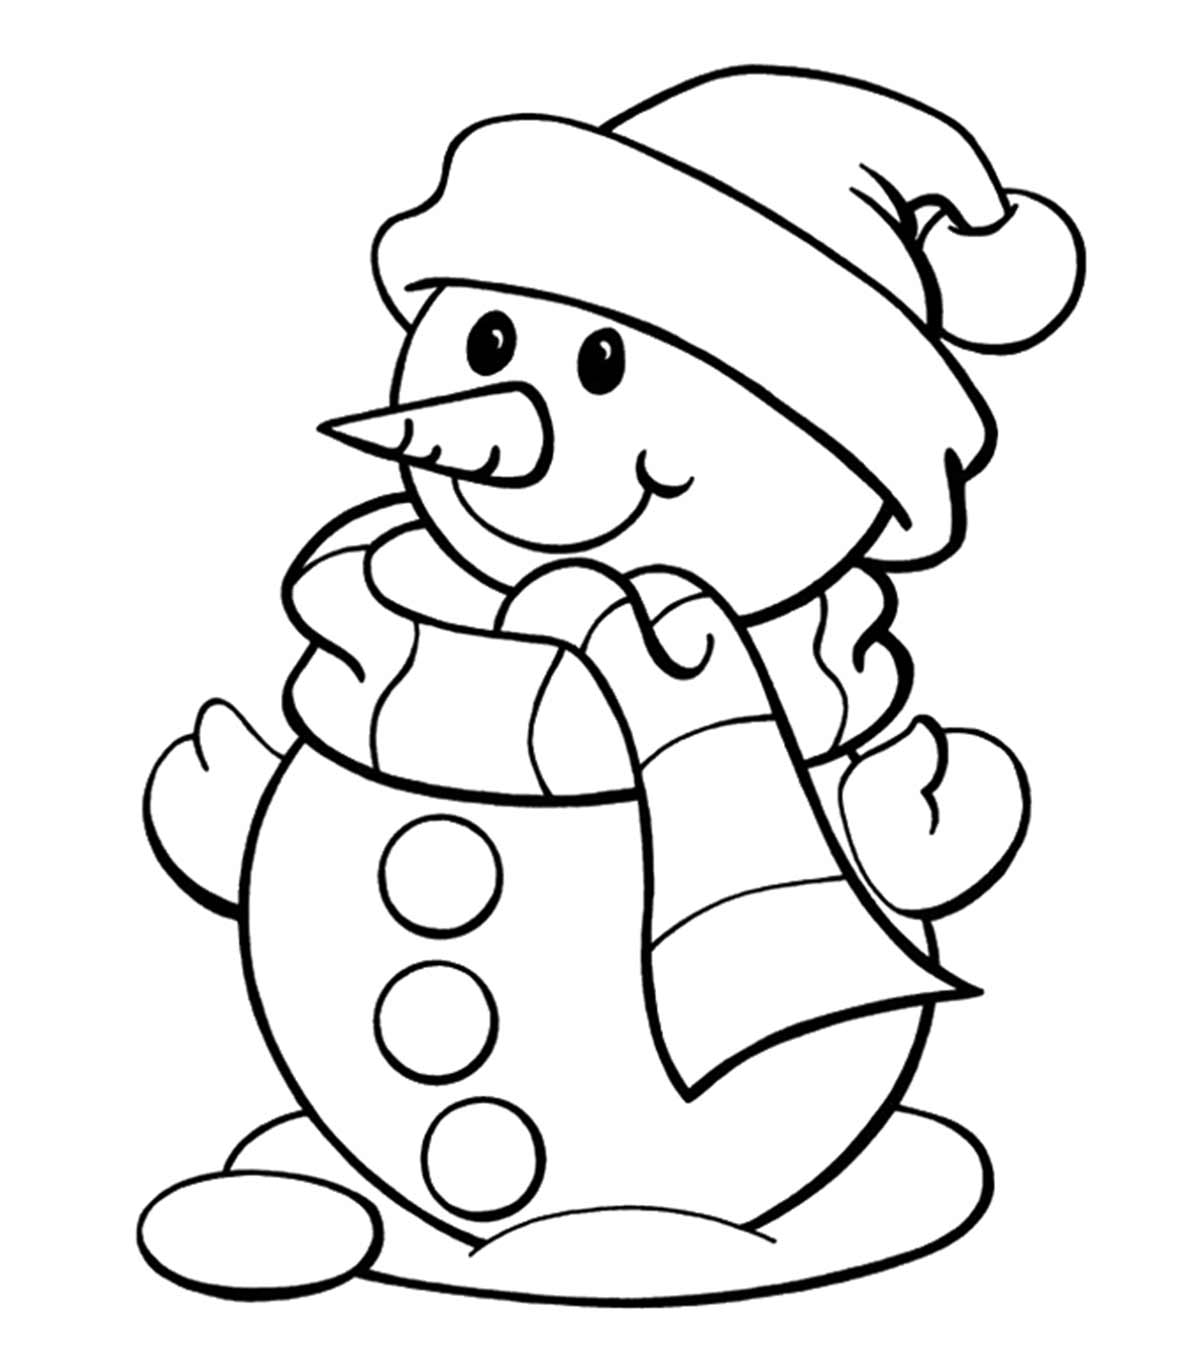 Cute Elmo Coloring Pages - Free Printables - MomJunction | 1350x1200